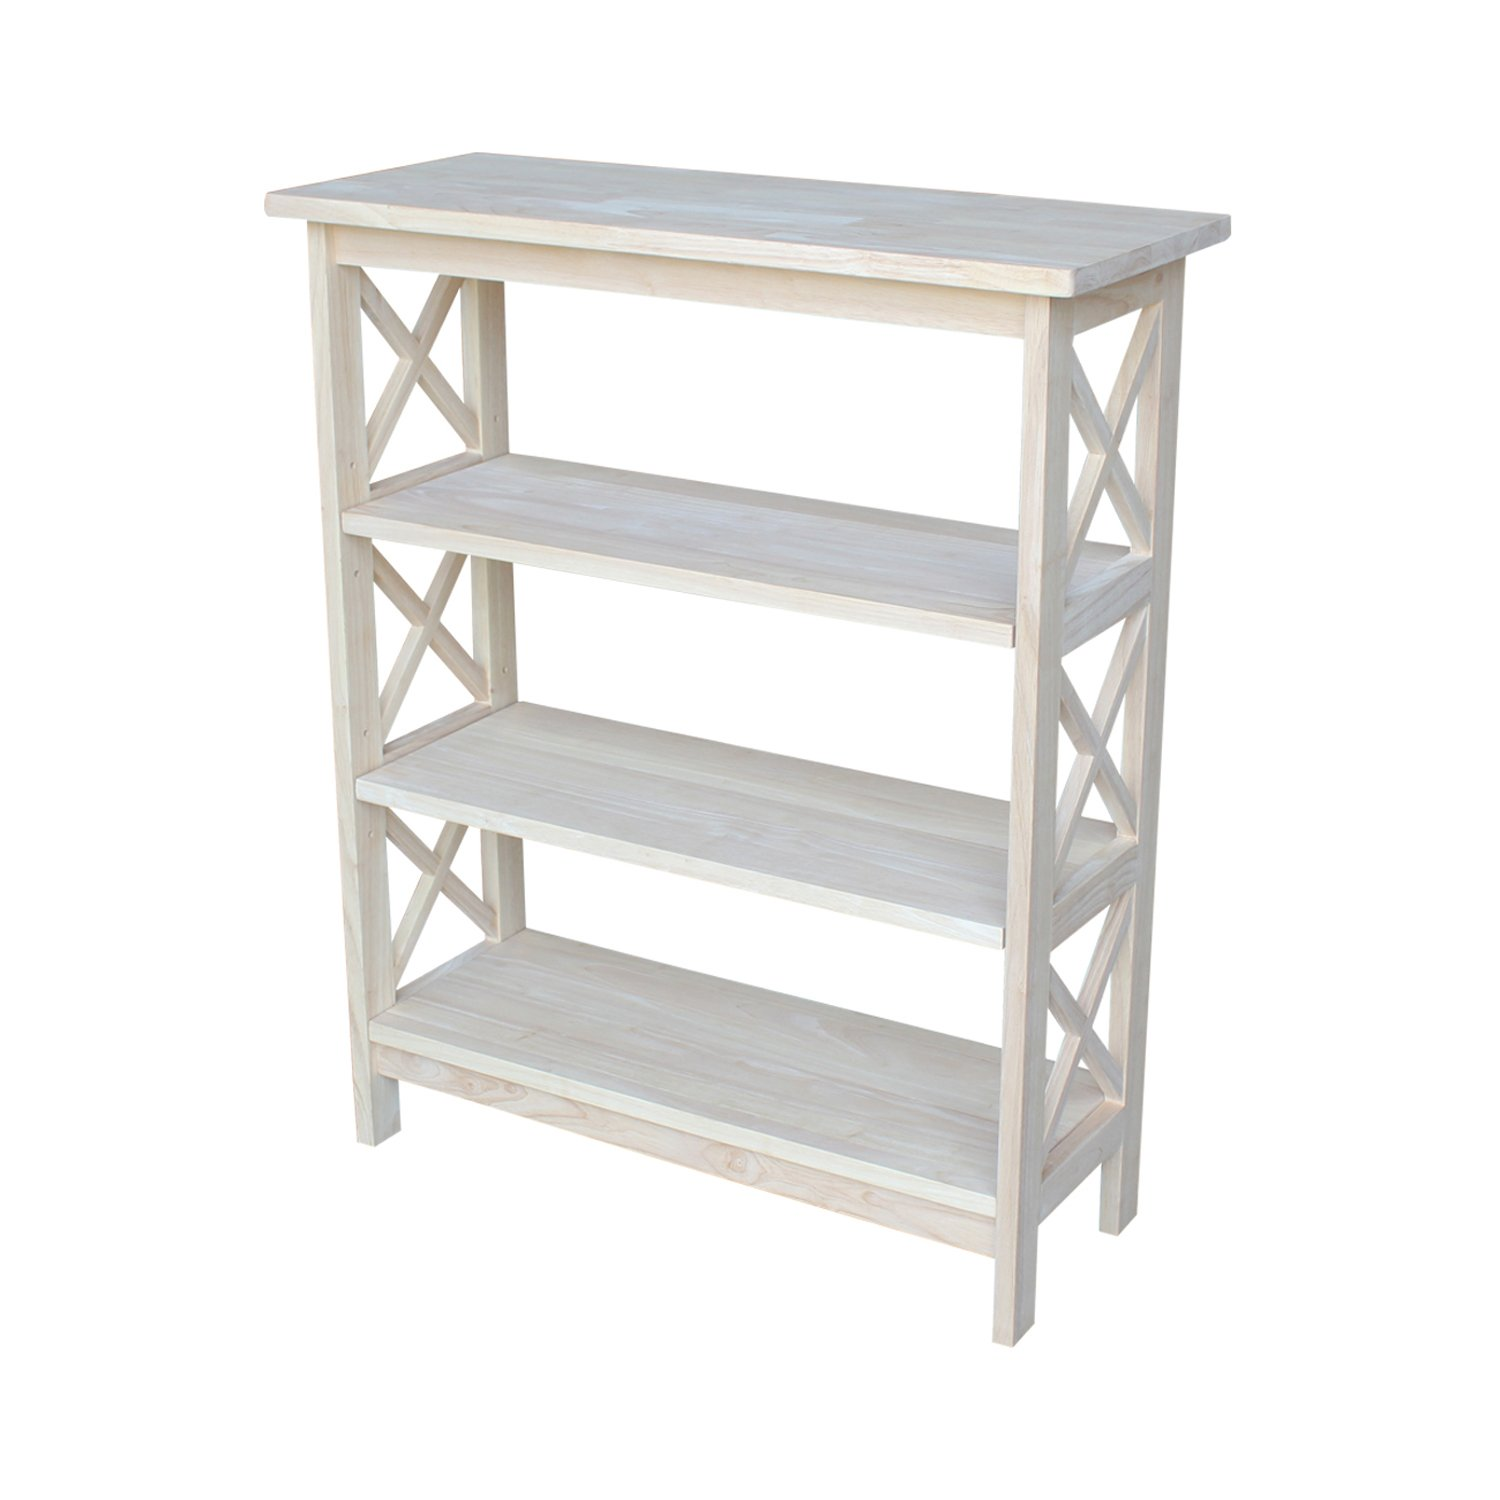 International Concepts SH-3630 X 3-Tier X-Sided Bookcase, Unfinished